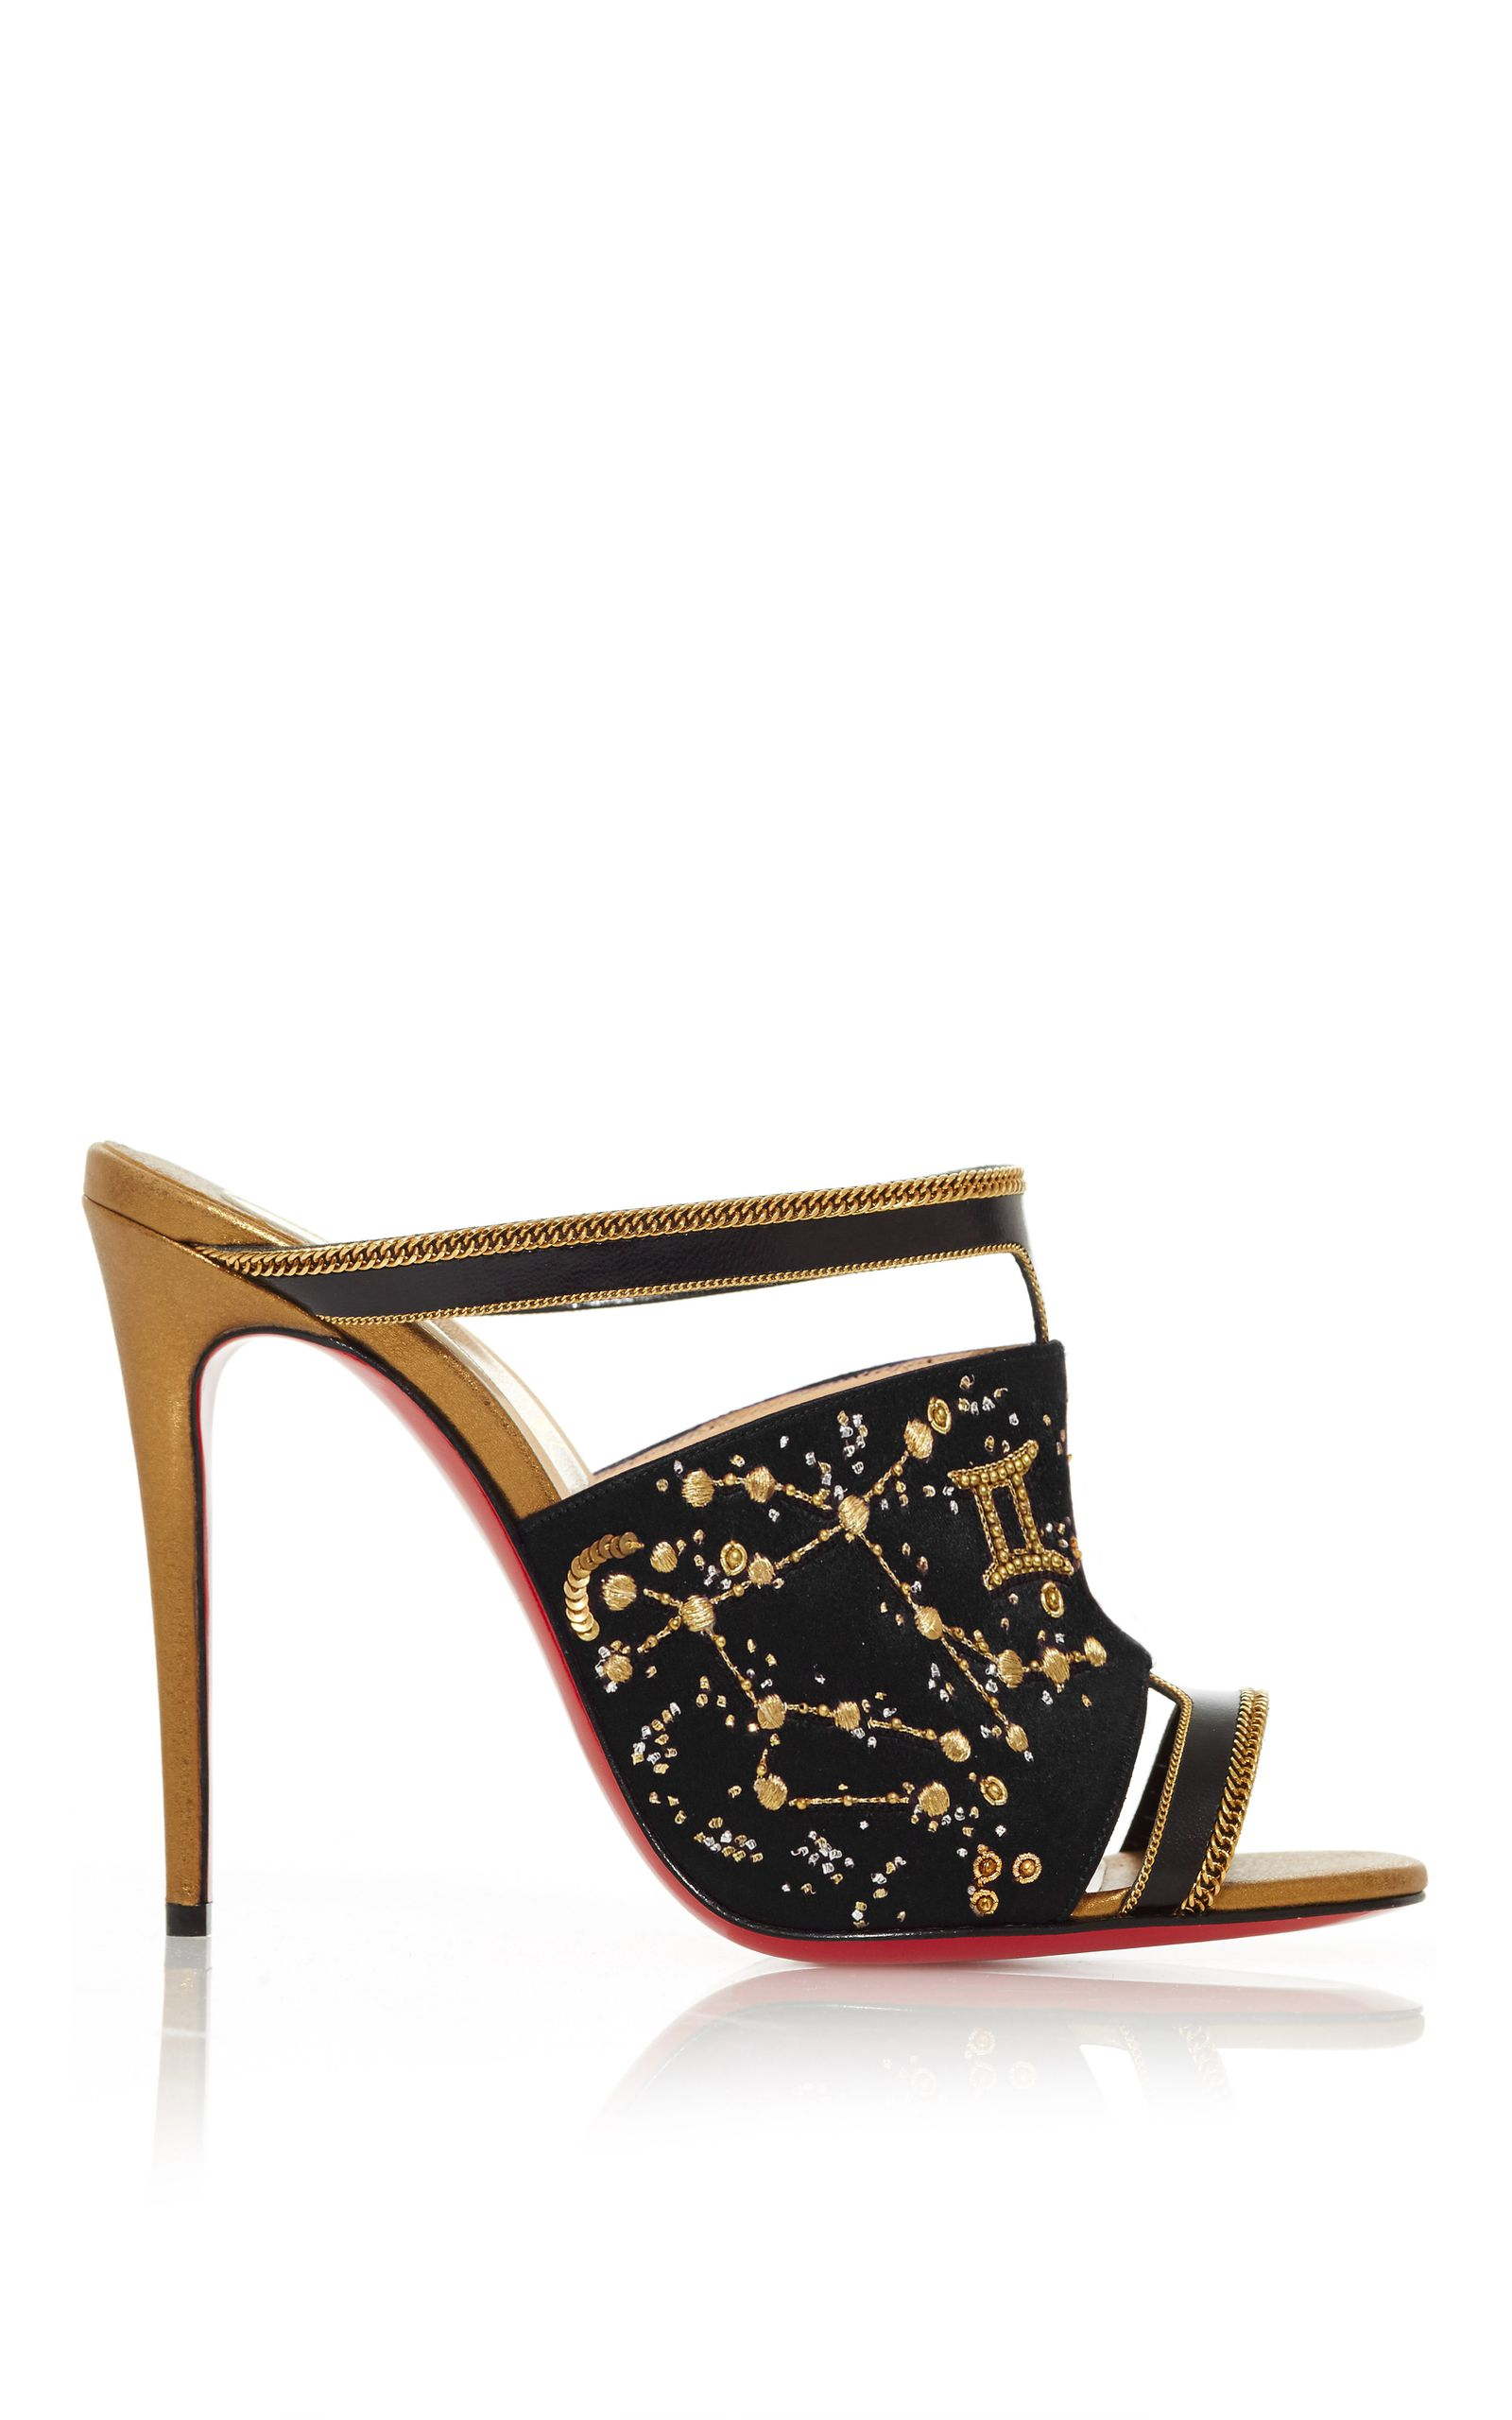 knock of shoes - Christian Louboutin Releases Astrology-Inspired Footwear - Racked